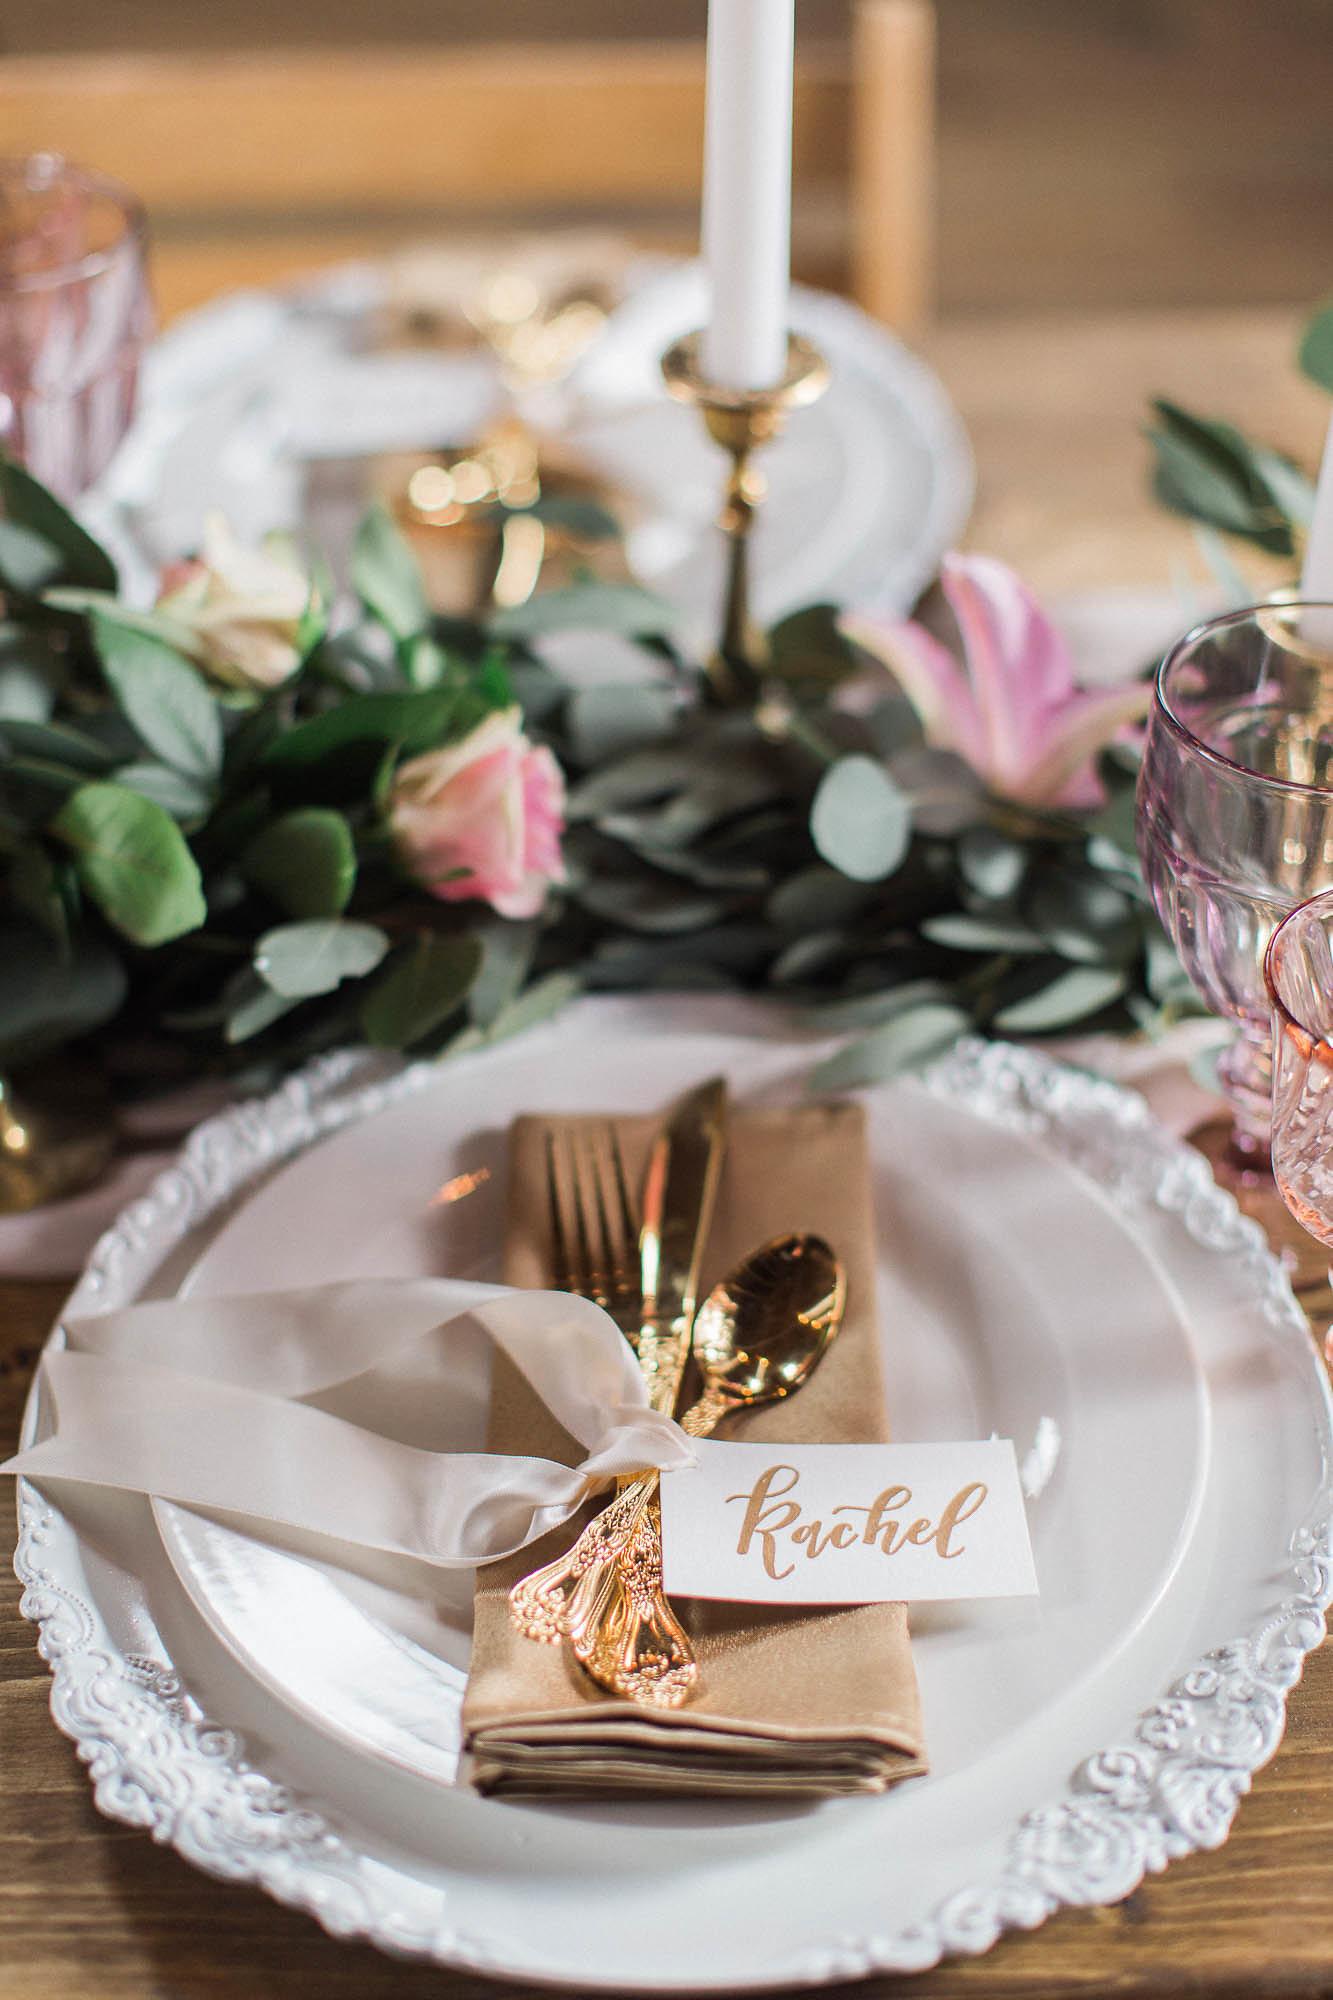 HandmadeDarling_BridePlacecard.jpg